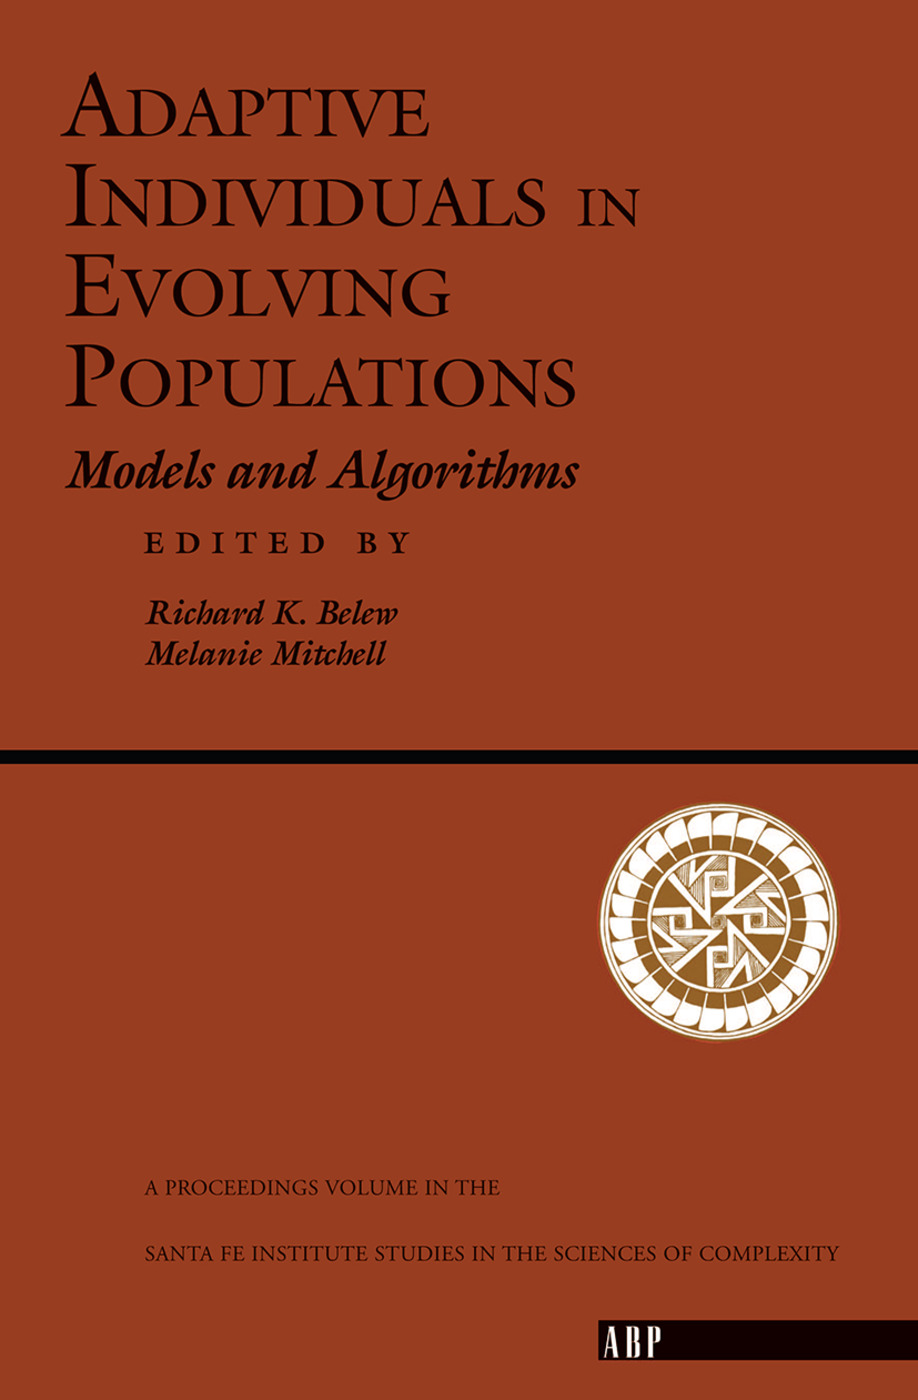 Adaptive Individuals In Evolving Populations: Models And Algorithms book cover